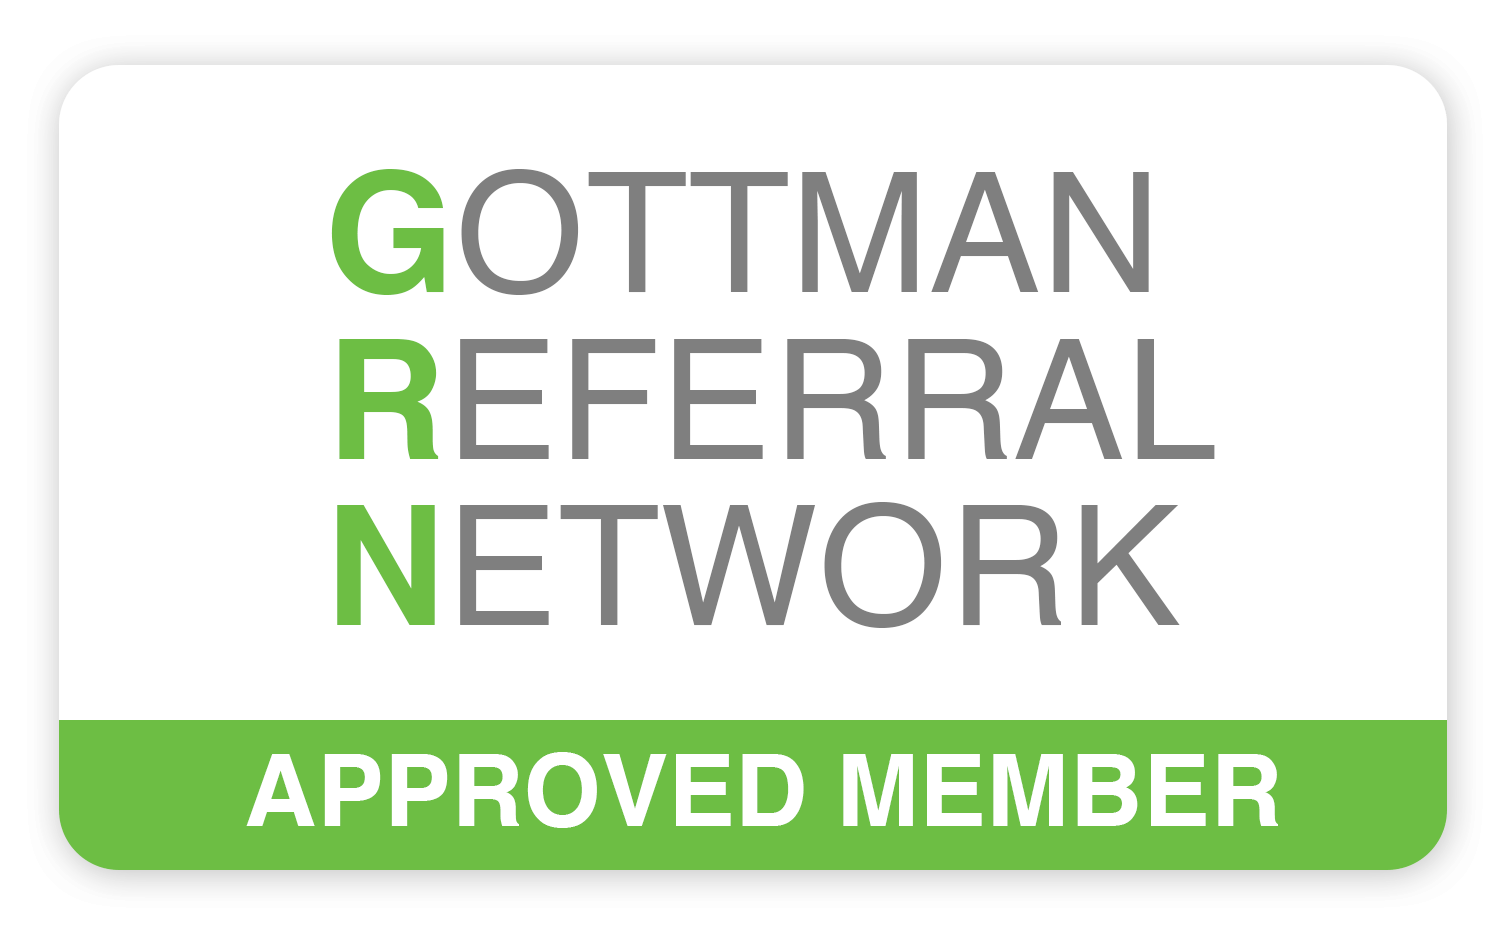 Elizabeth Pick's profile on the Gottman Referral Network